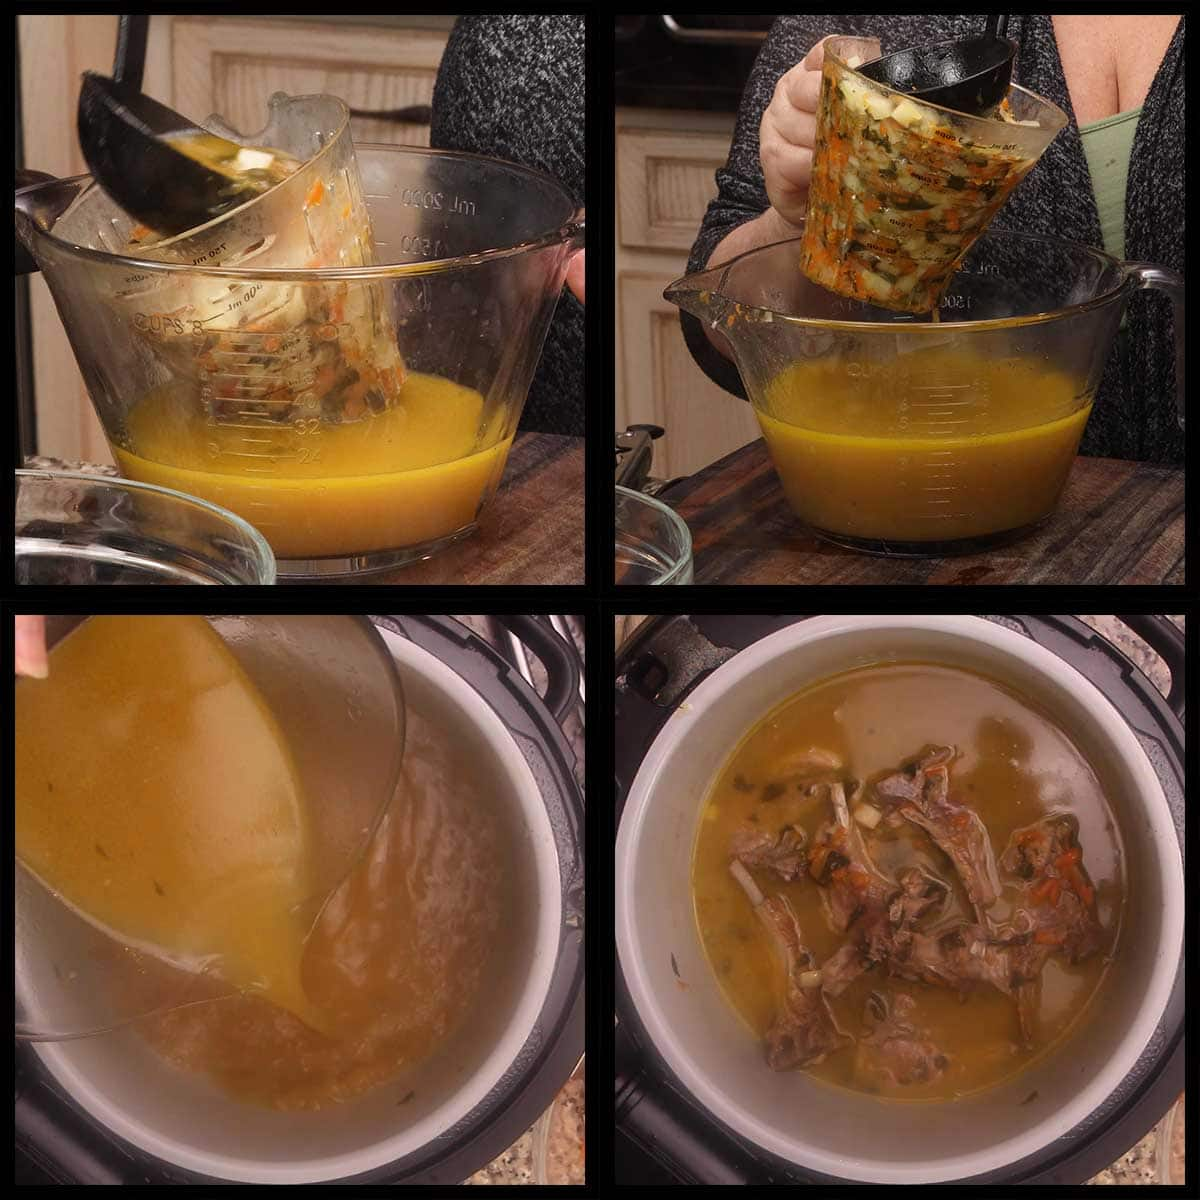 straining the vegetables from the broth